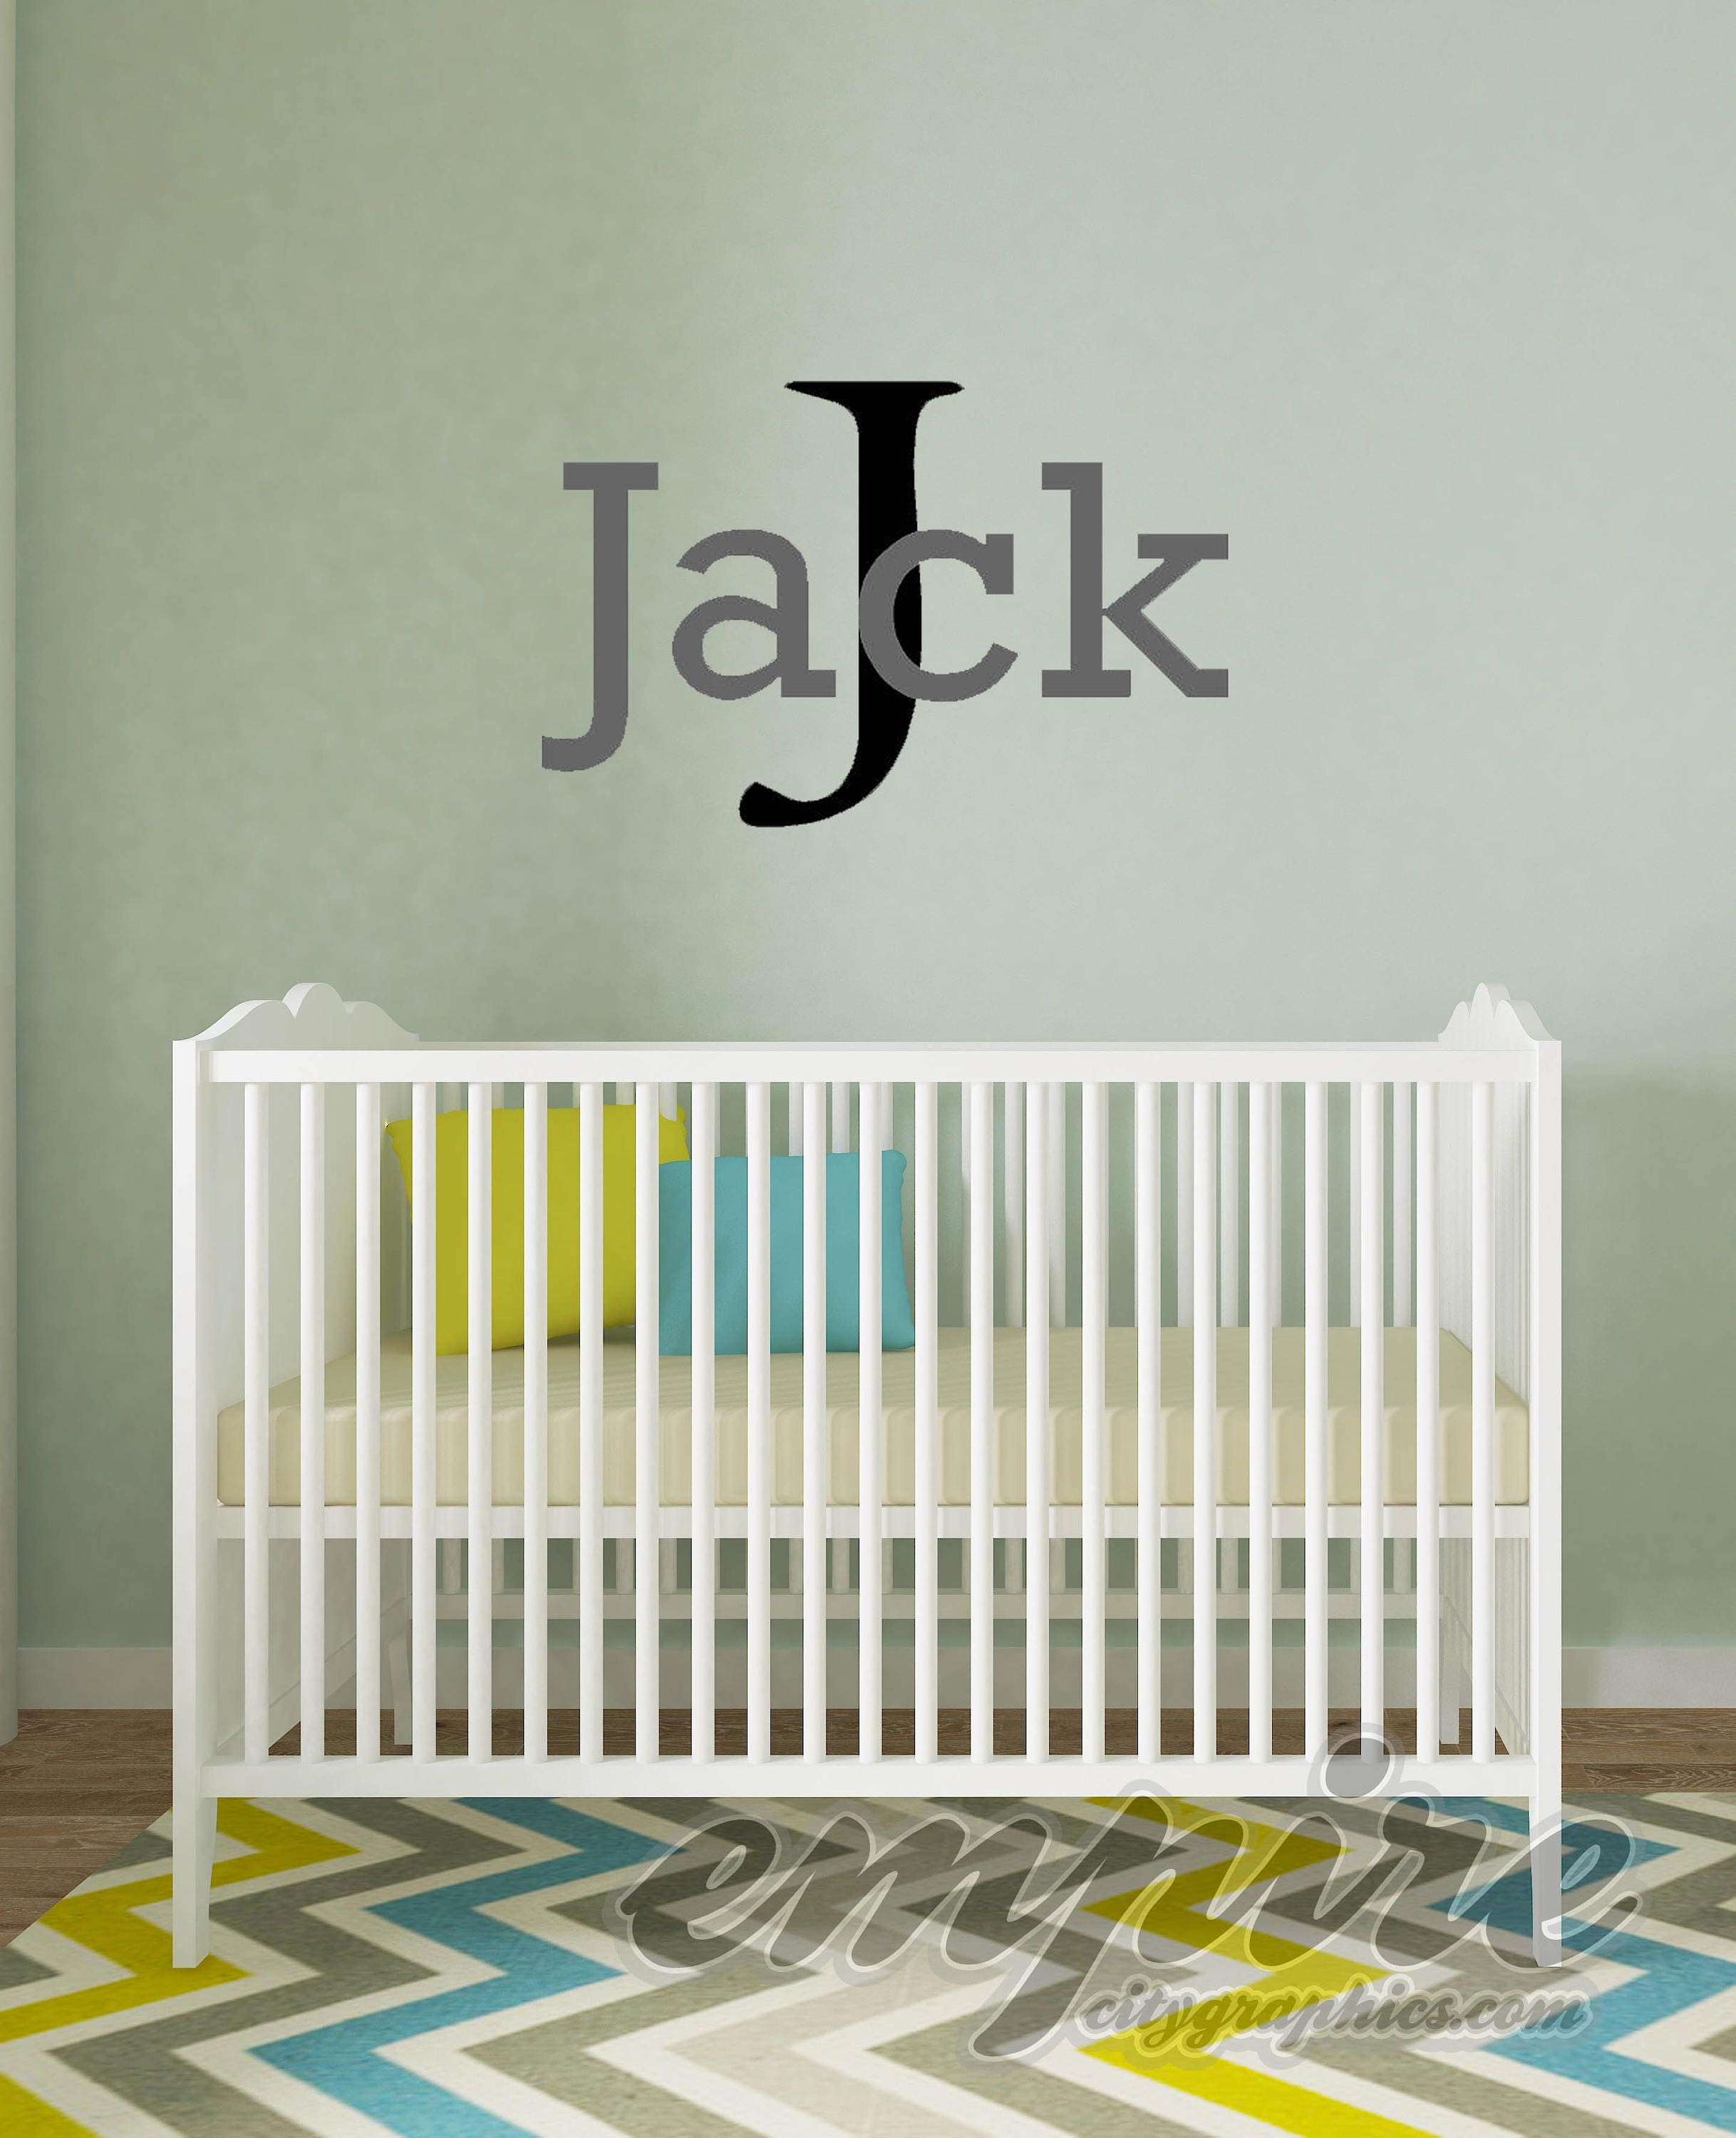 Monogram wall decals 3895 boys name wall decal boys monogram decals boys decor boys custom name amipublicfo Choice Image